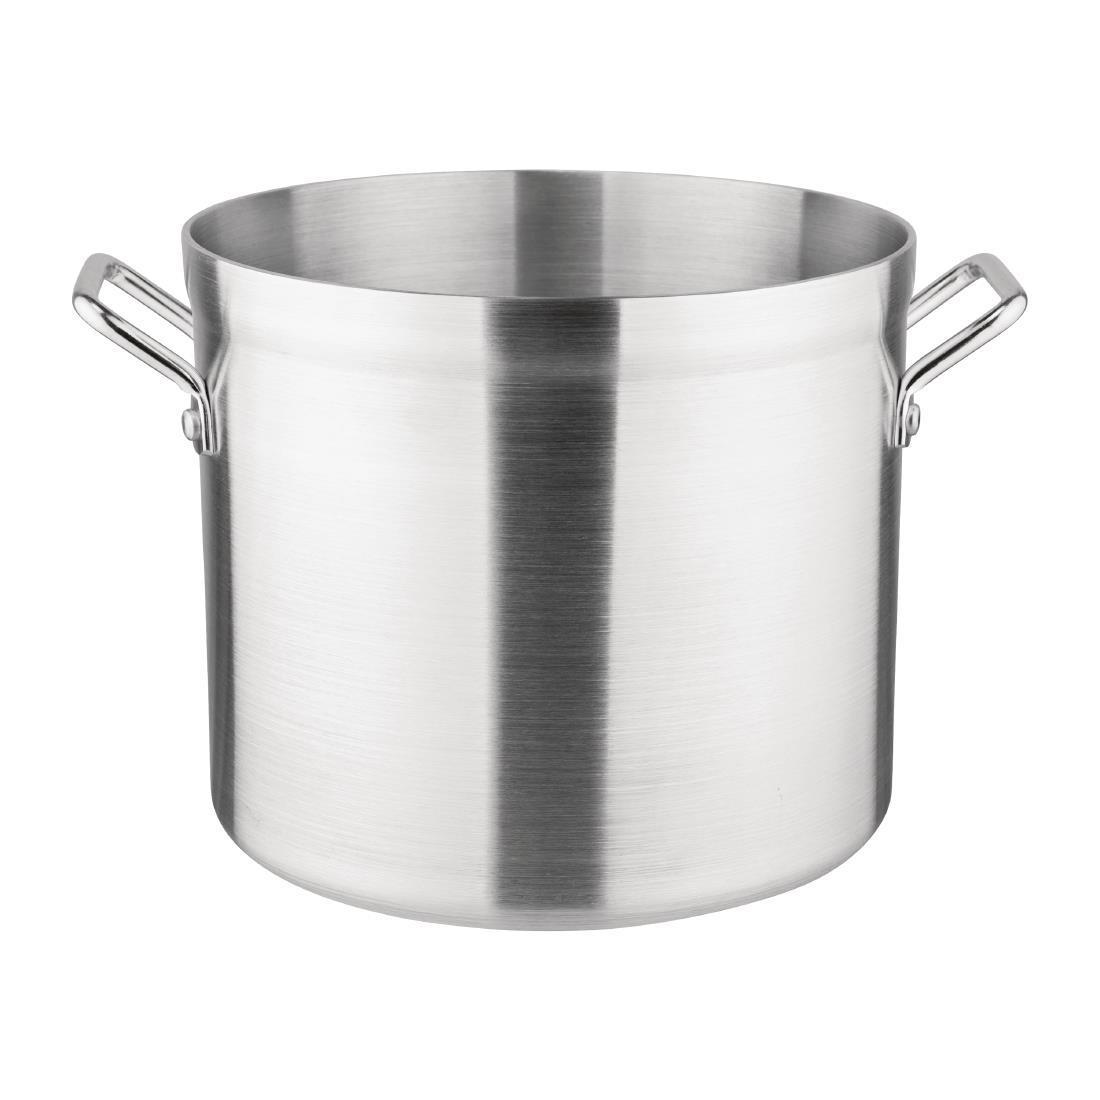 Vogue Deep Boiling Pot 15.1Ltr - S350